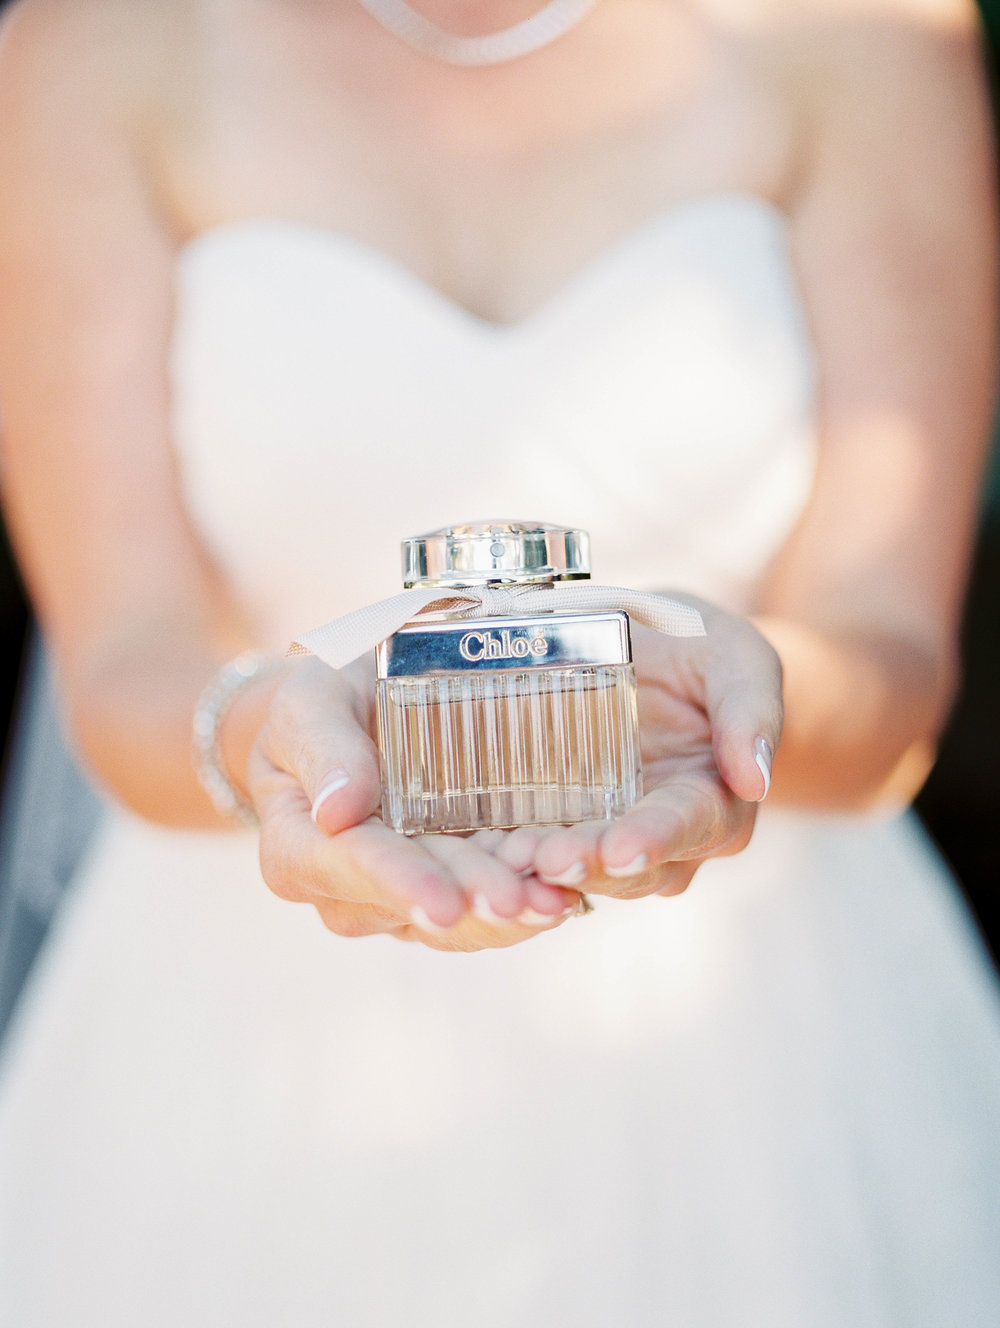 Chloe Perfume Wedding Fragrance